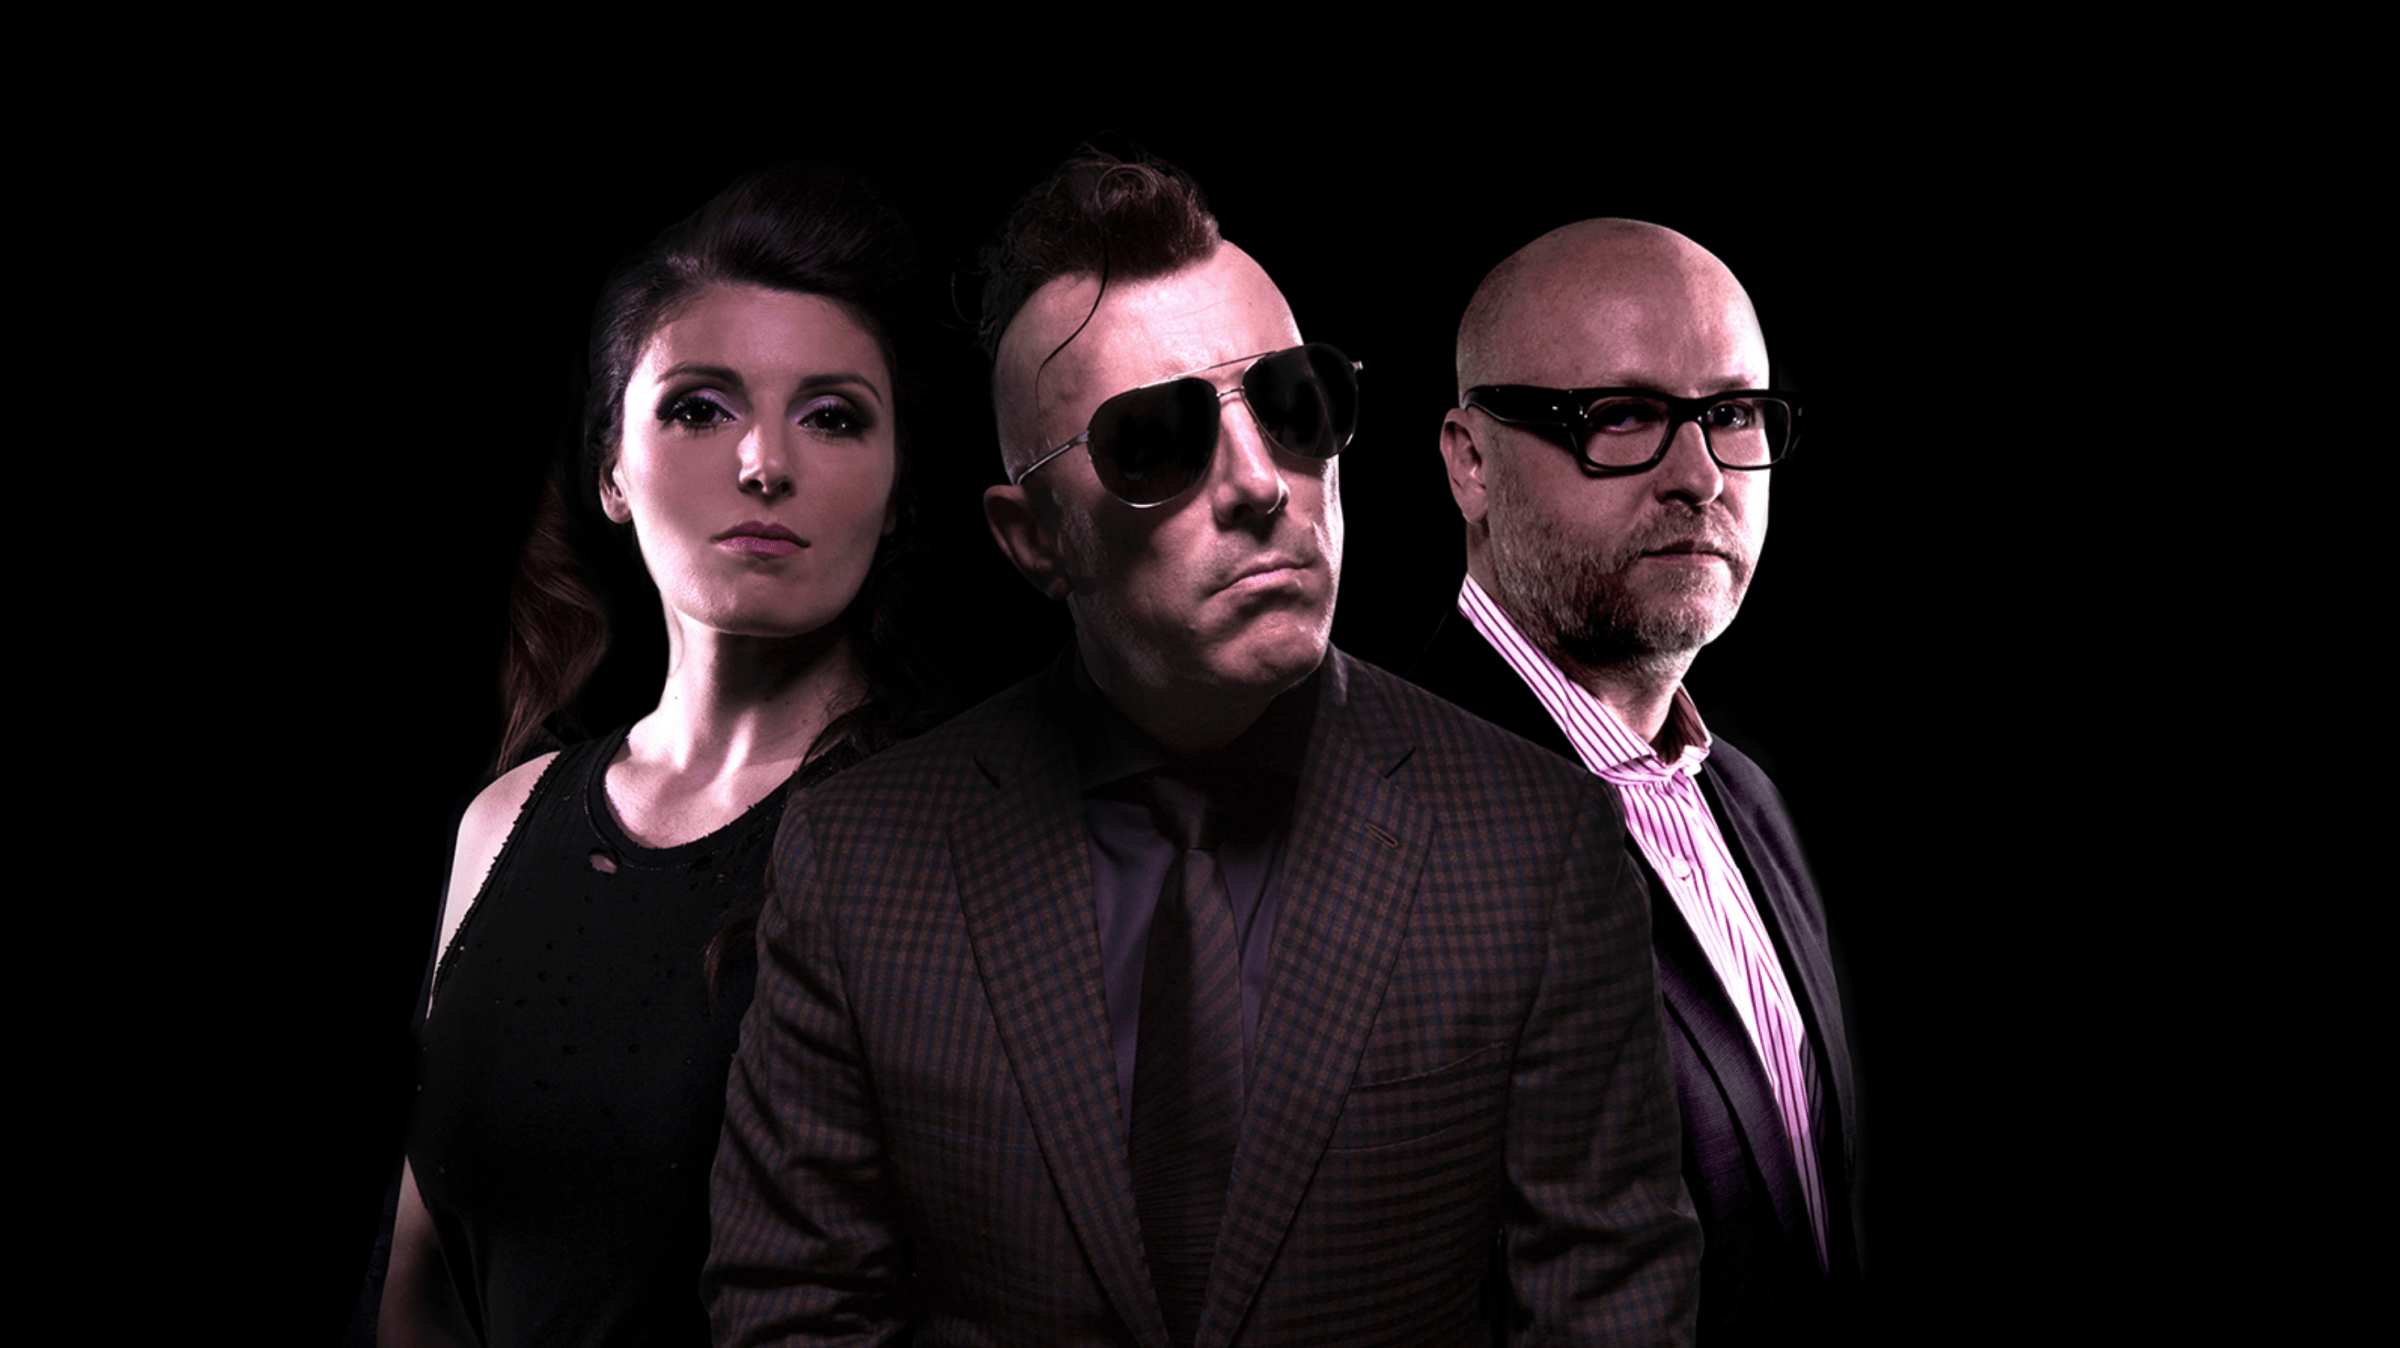 Puscifer band 2020 - Music Trajectory